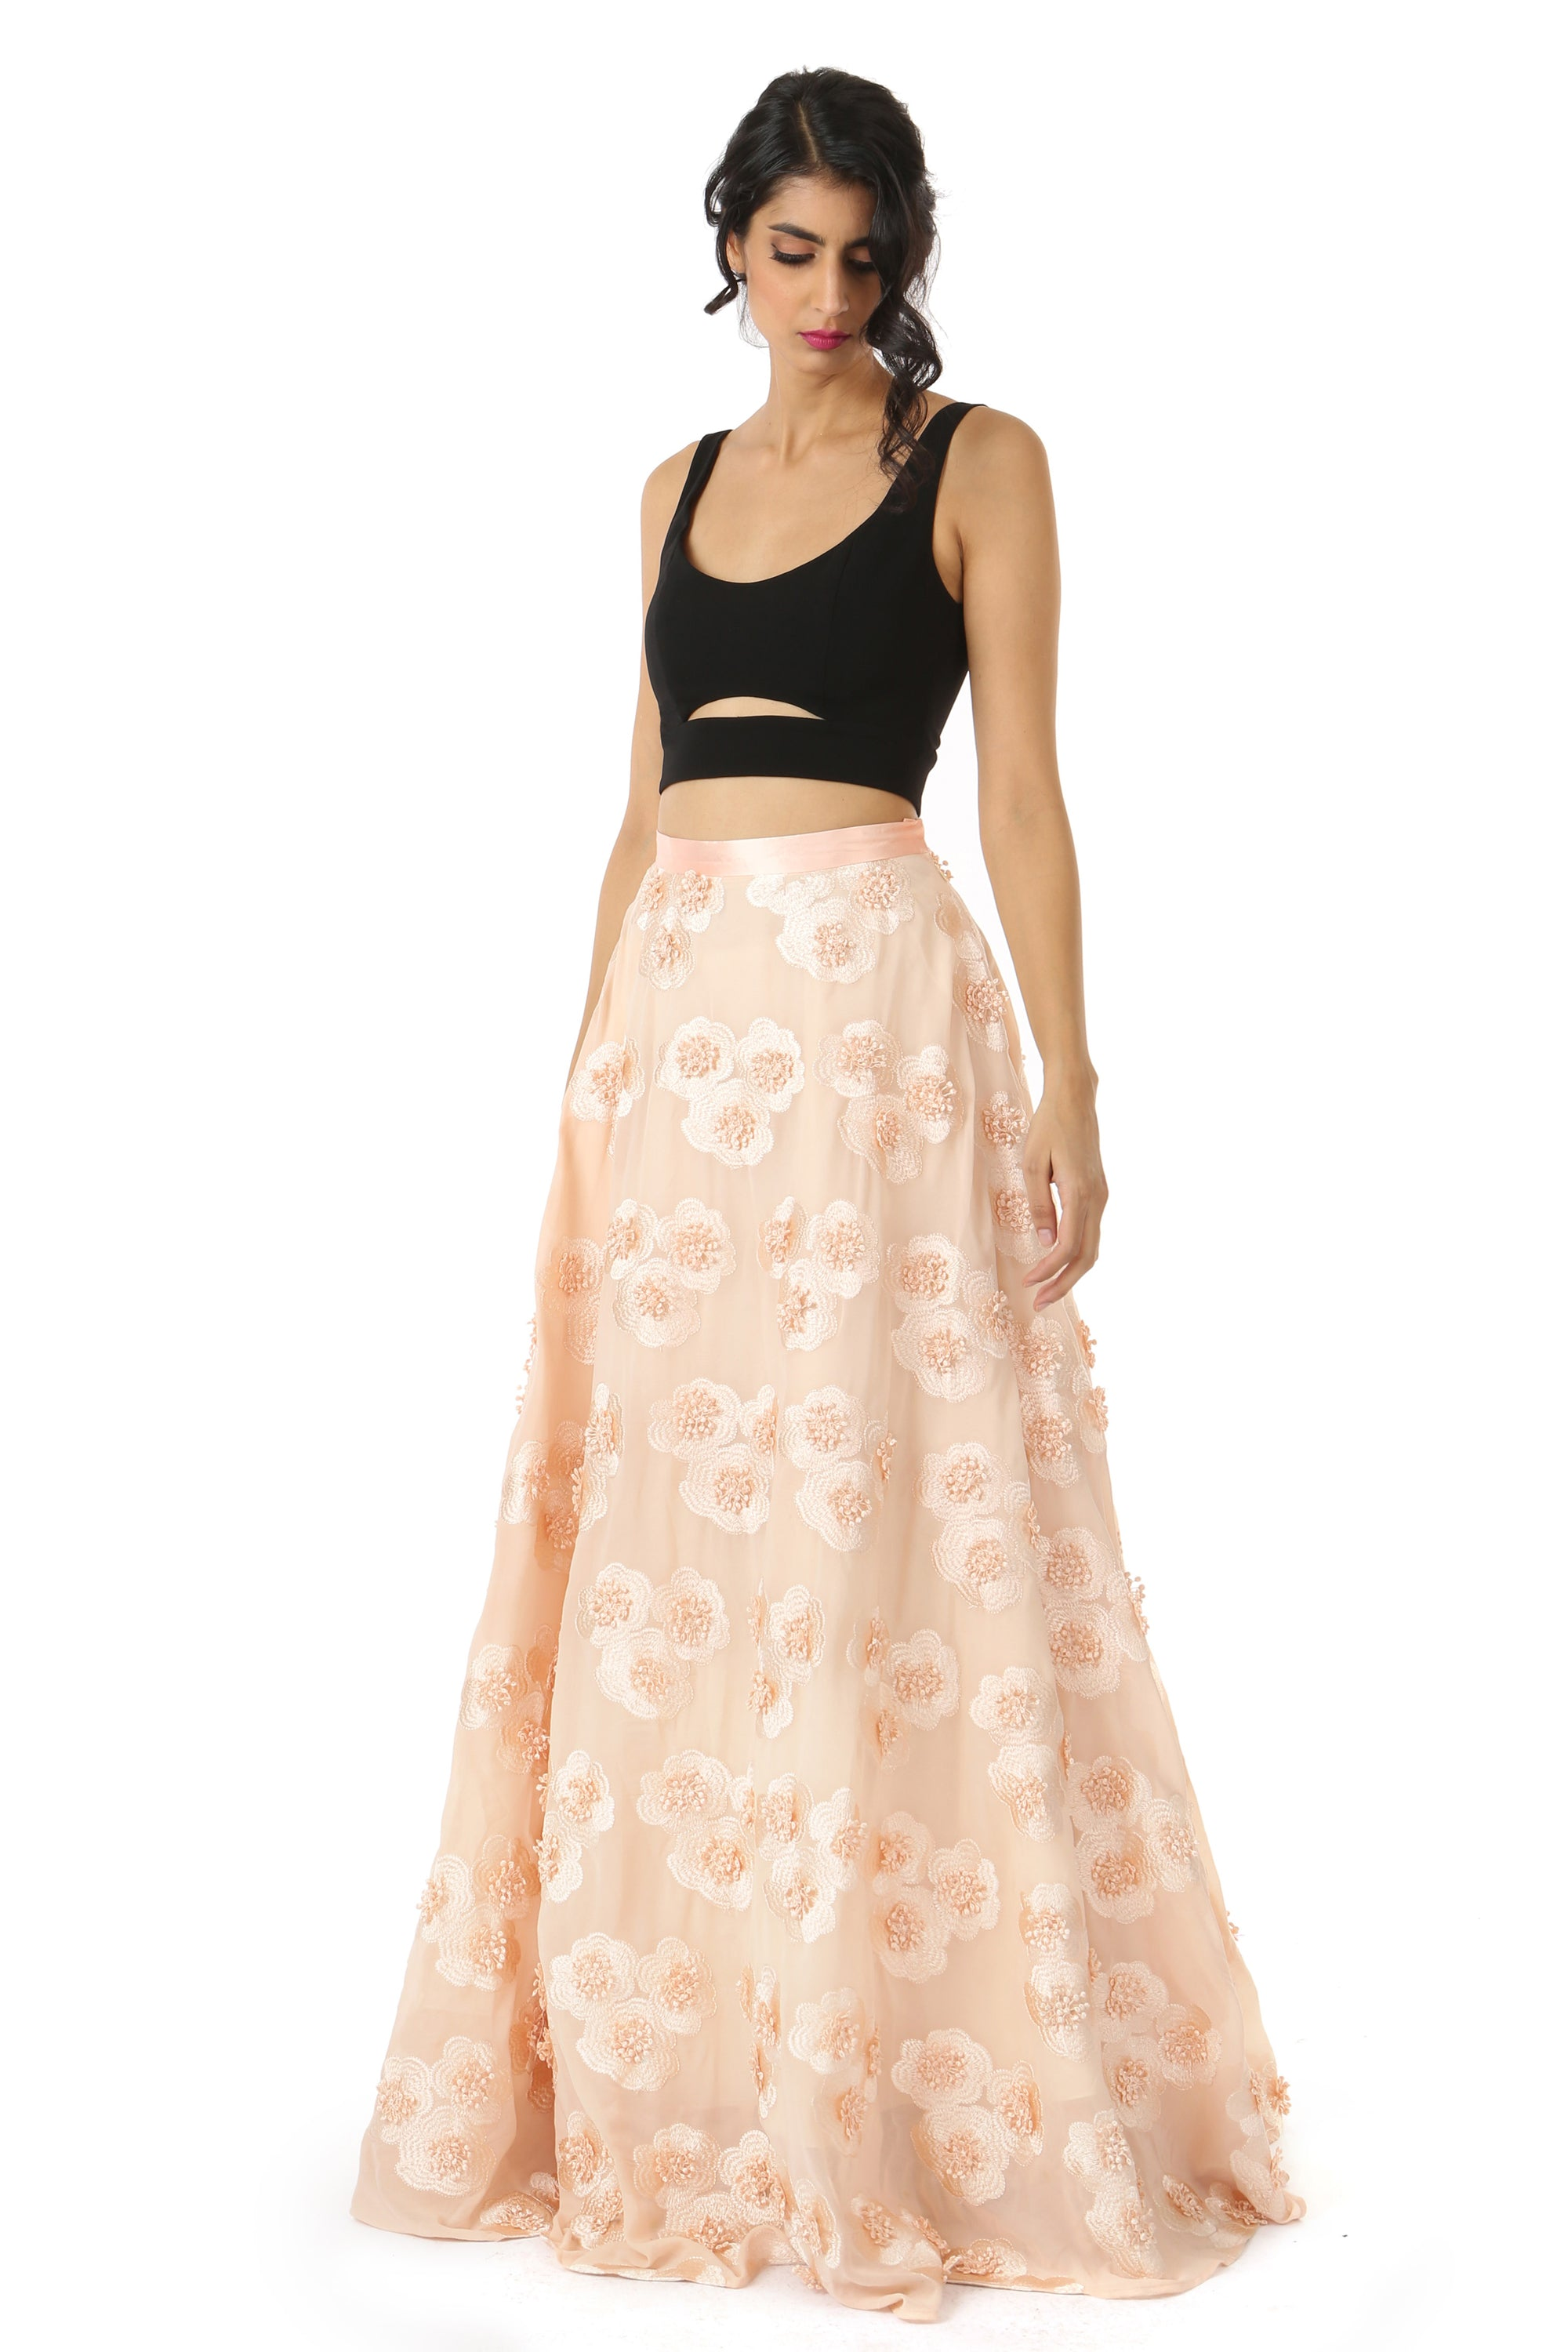 ca1a1a6f9c Peach And Black 3d Floral Lehenga | VIVA-LUXE